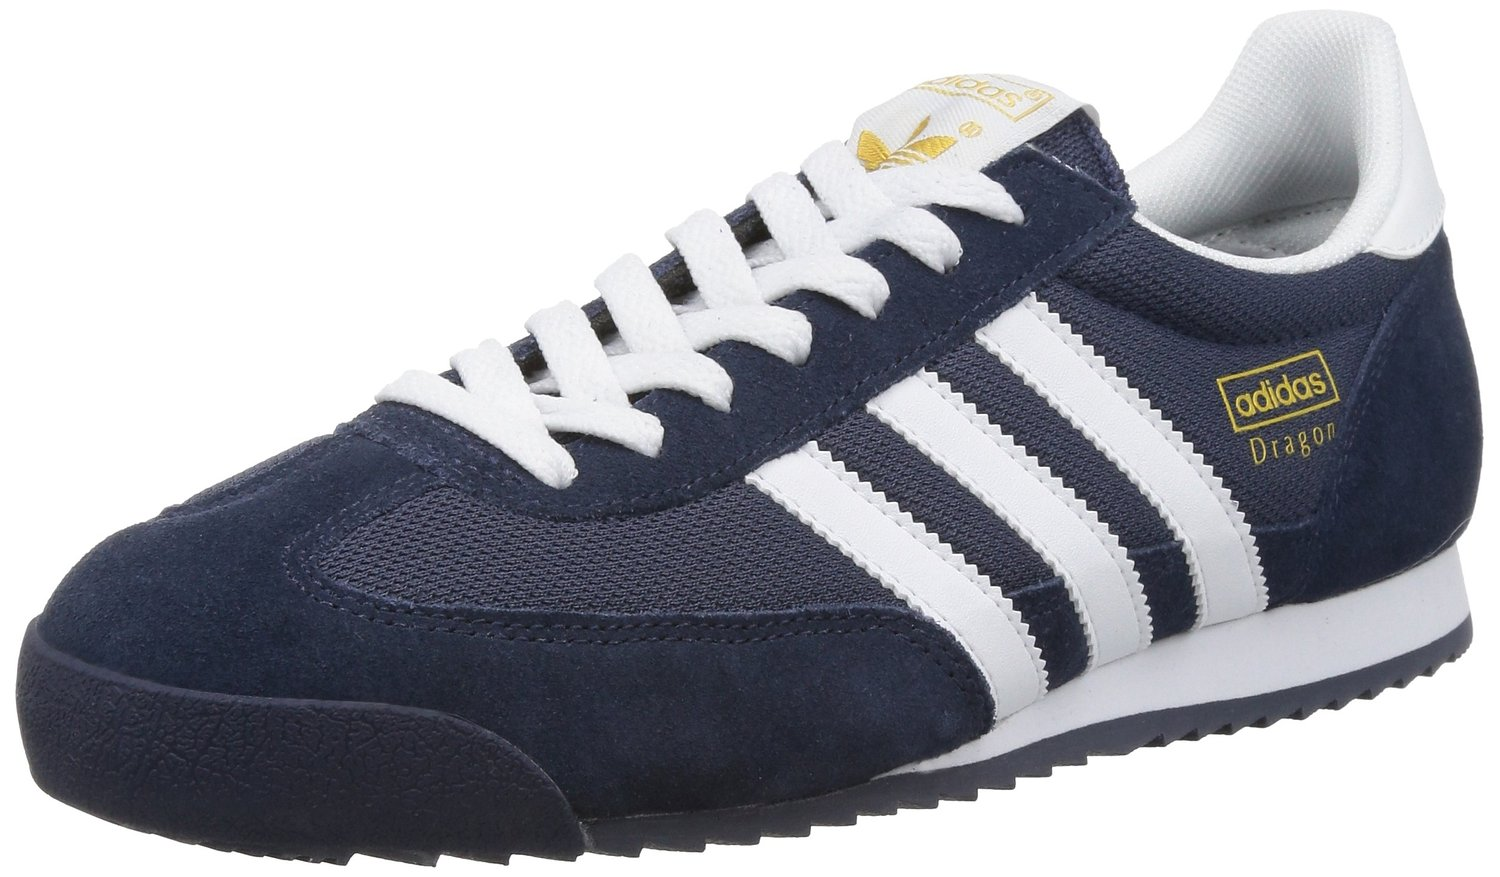 adidas dragon shoes adidas dragon menu0027s trainers shoes great deals,adidas sale joggers,adidas  tracksuit sale,high quality CMKLXPQ